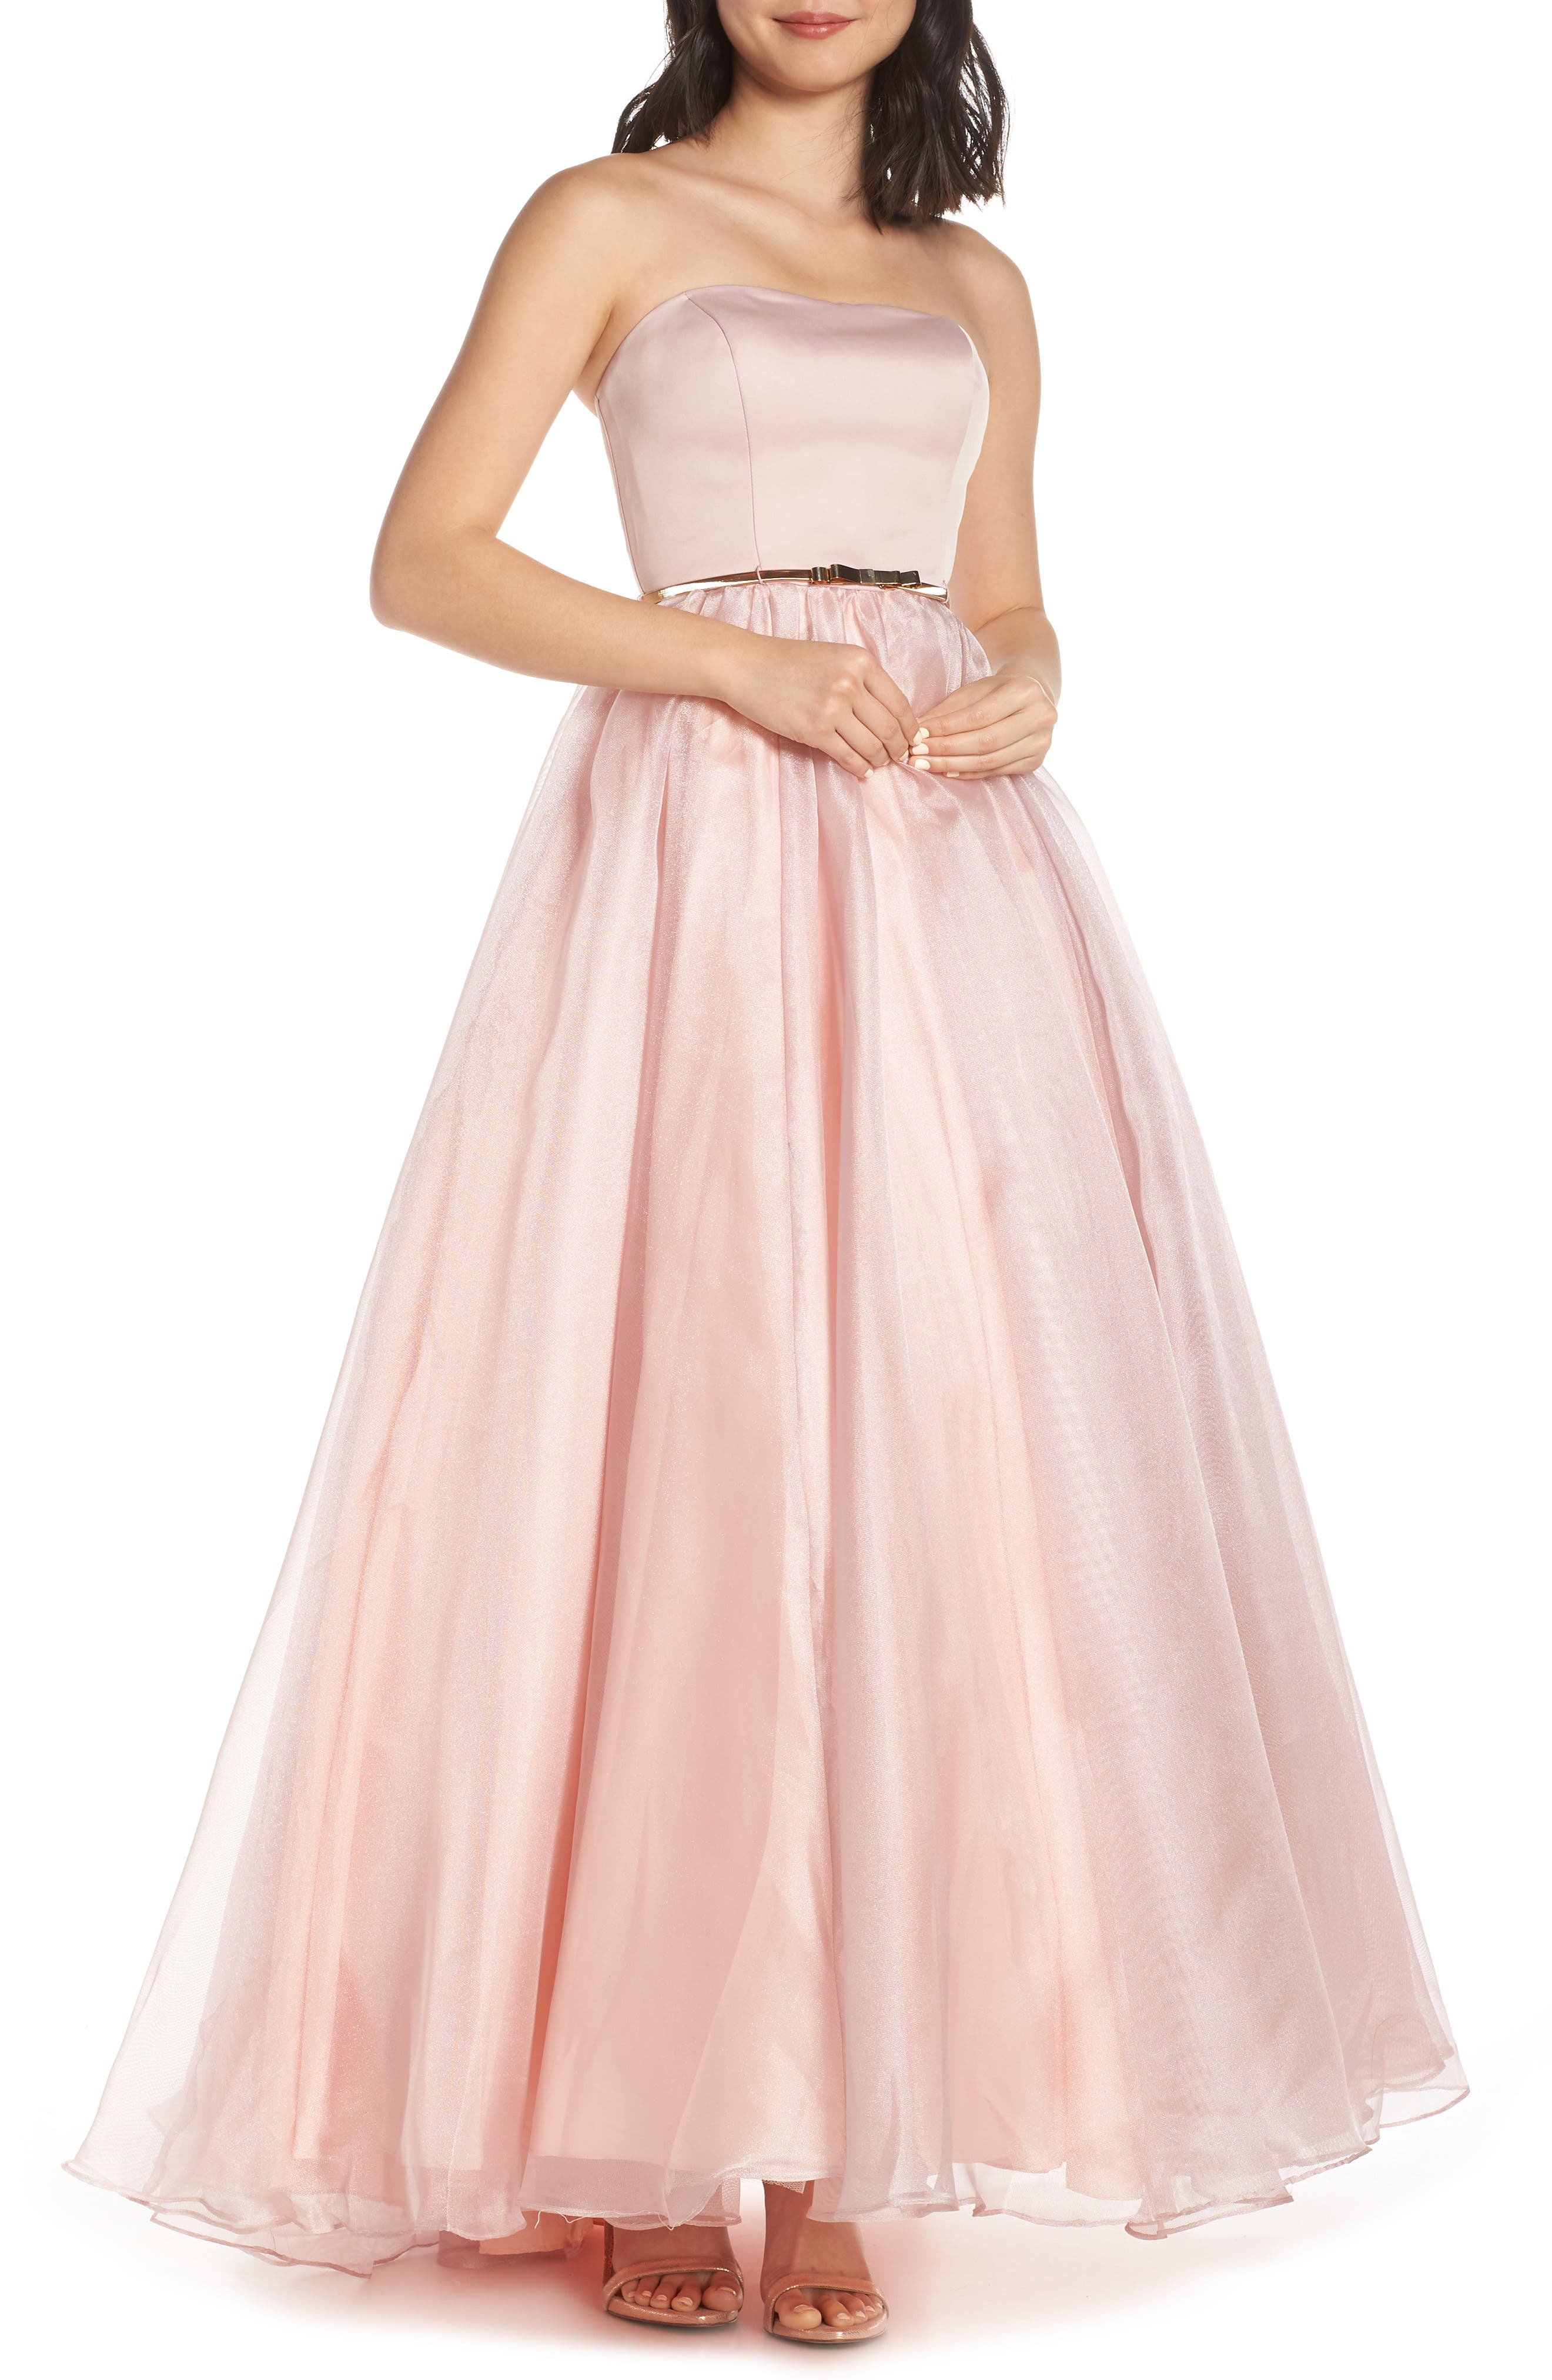 1950s Prom Dresses, Formal Dresses and Party Dresses Womens MAC Duggal Strapless Belted Evening Dress $398.00 AT vintagedancer.com